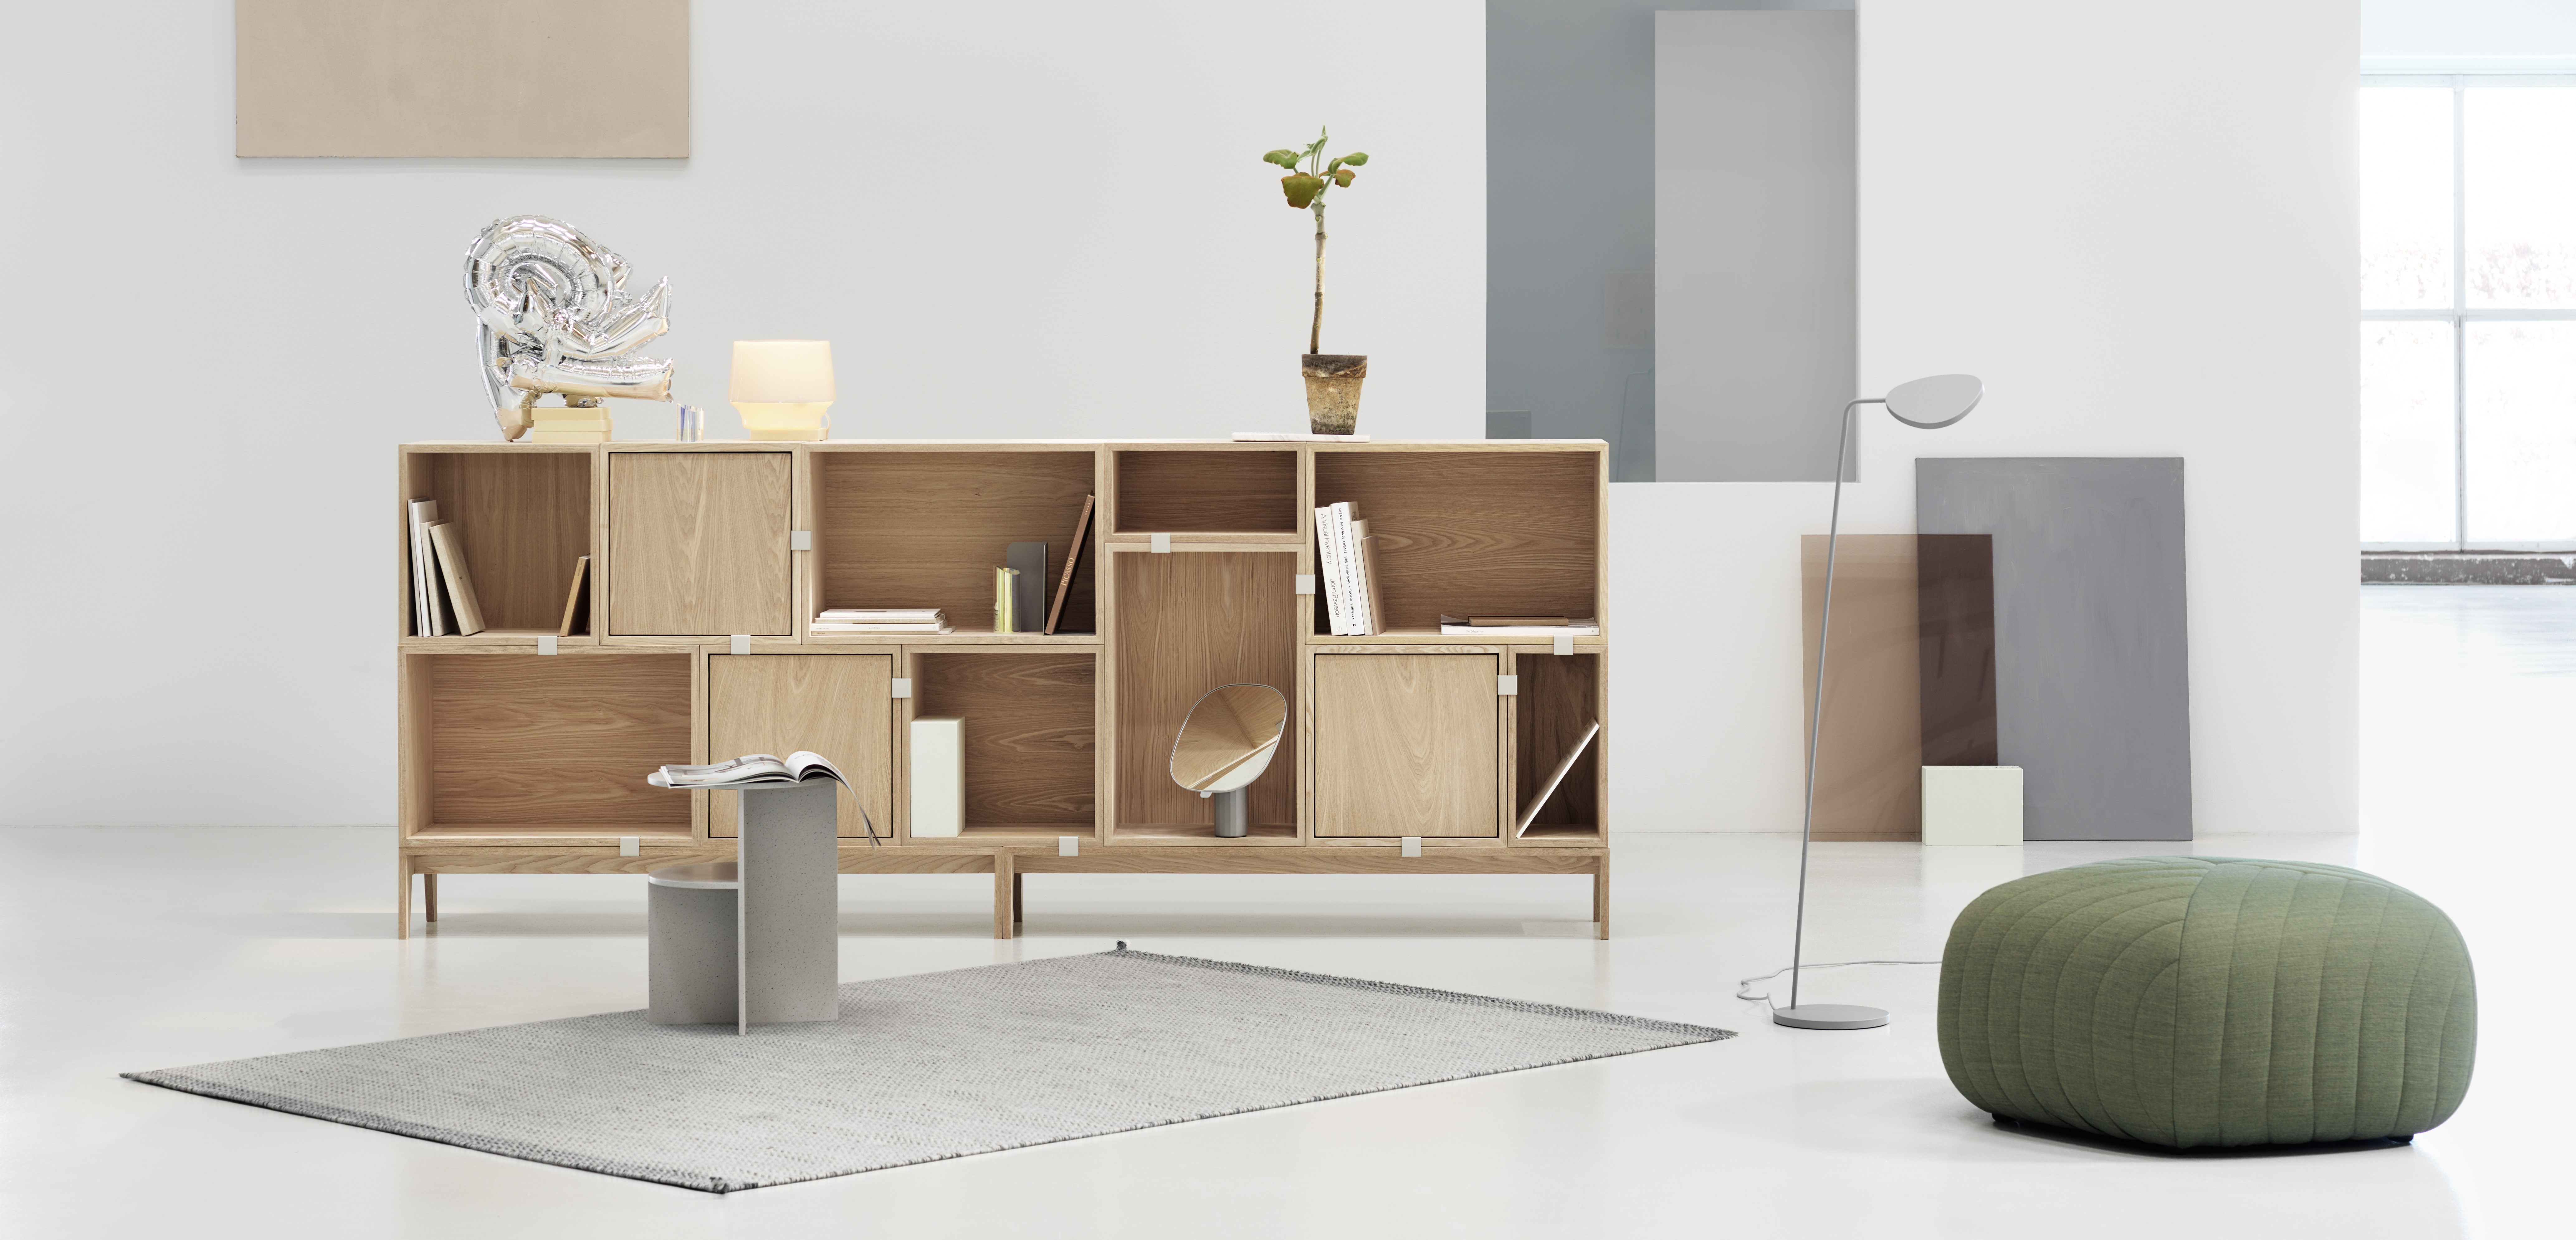 Smart beautiful home storage that makes life better